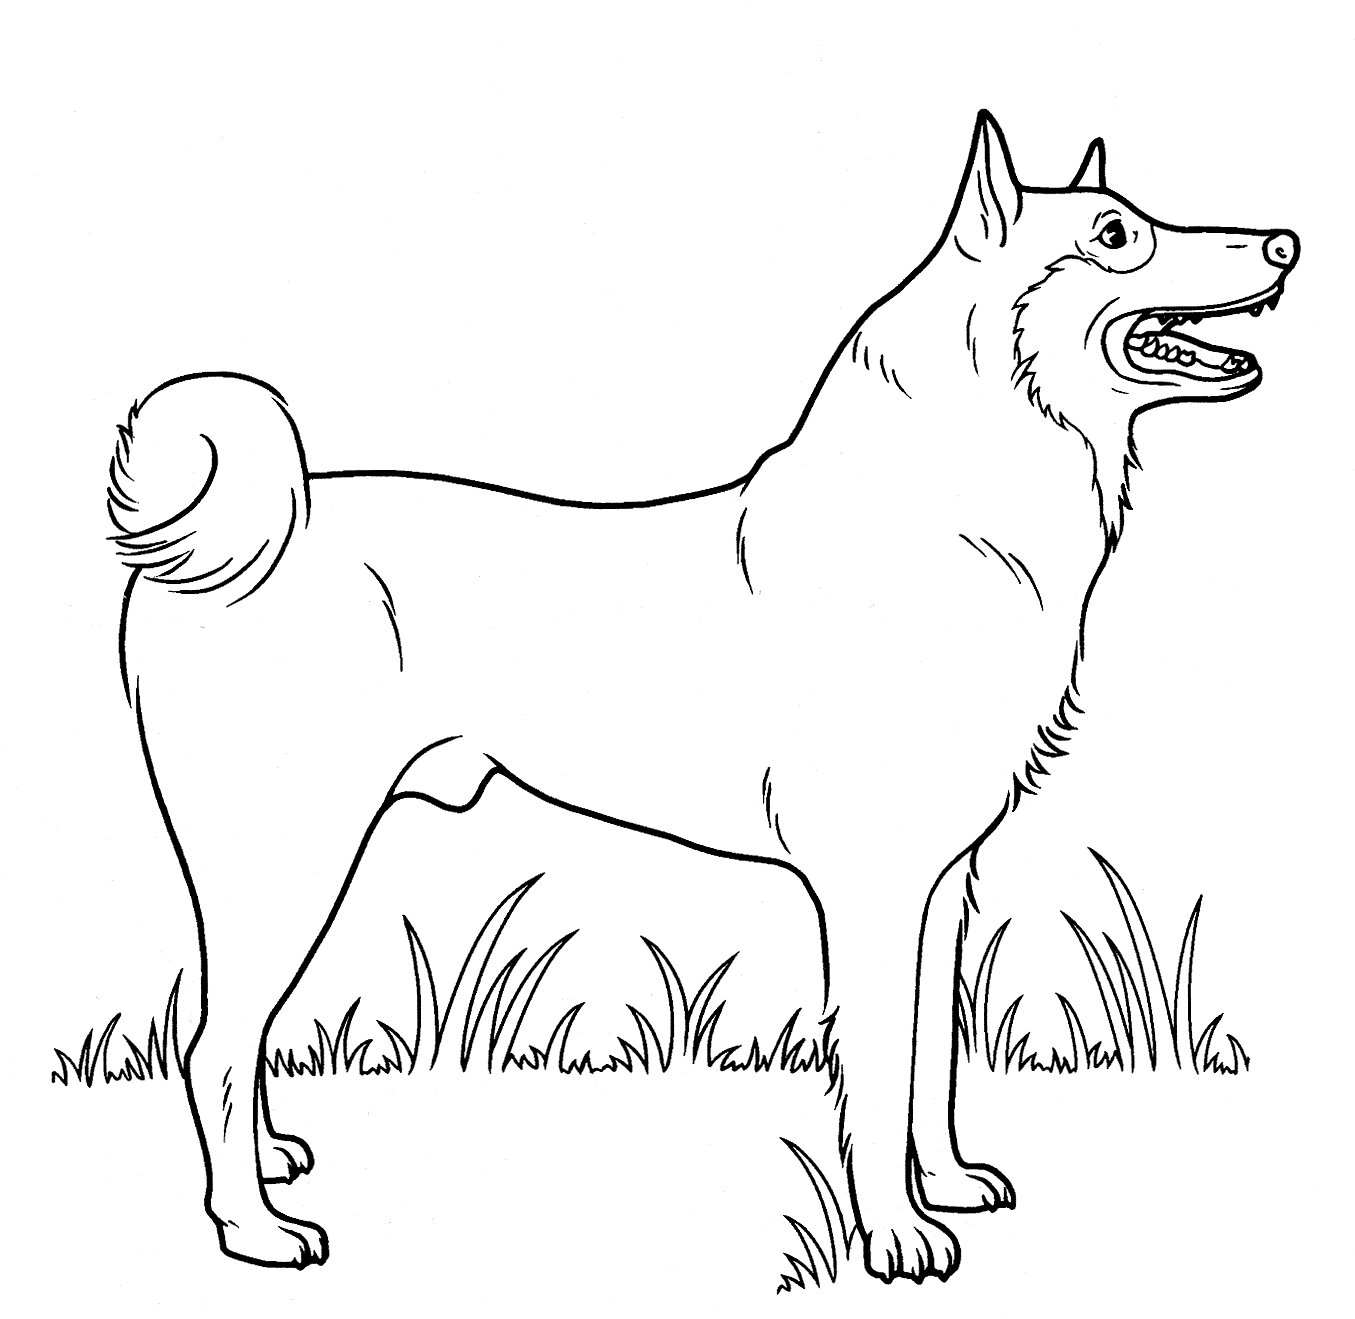 Street Dog Coloring Page